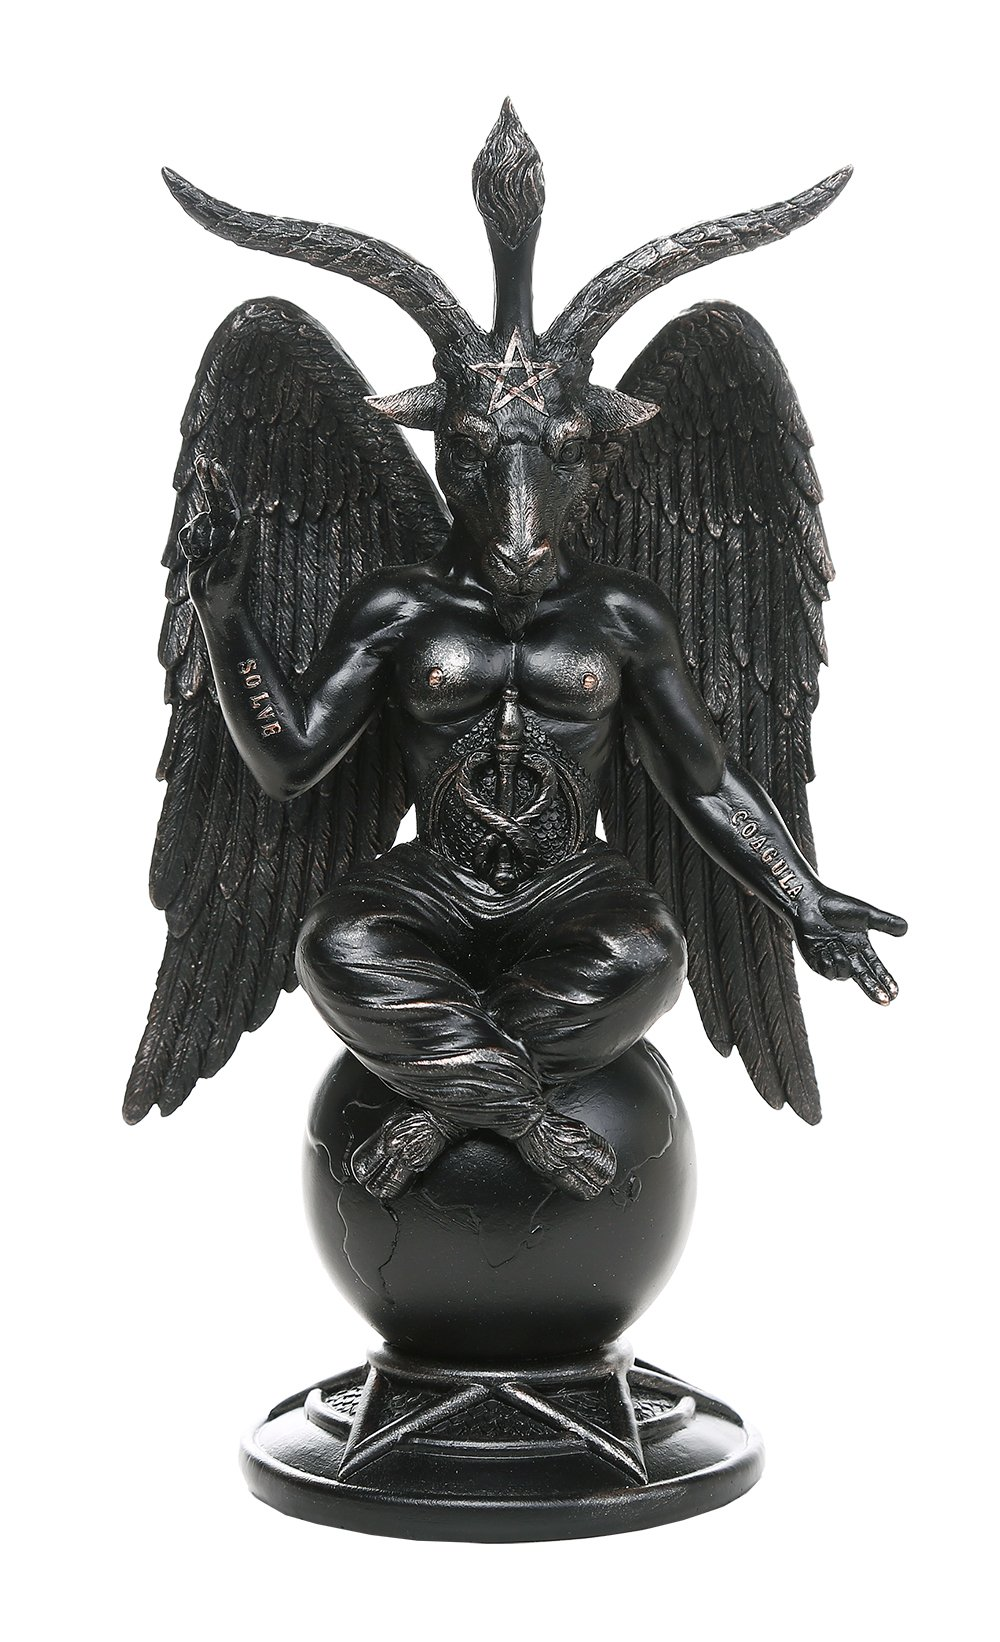 Baphomet Horned Sabbatic Goat Solve et Coagula Statue 10 Inch Tall by Pacific Giftware